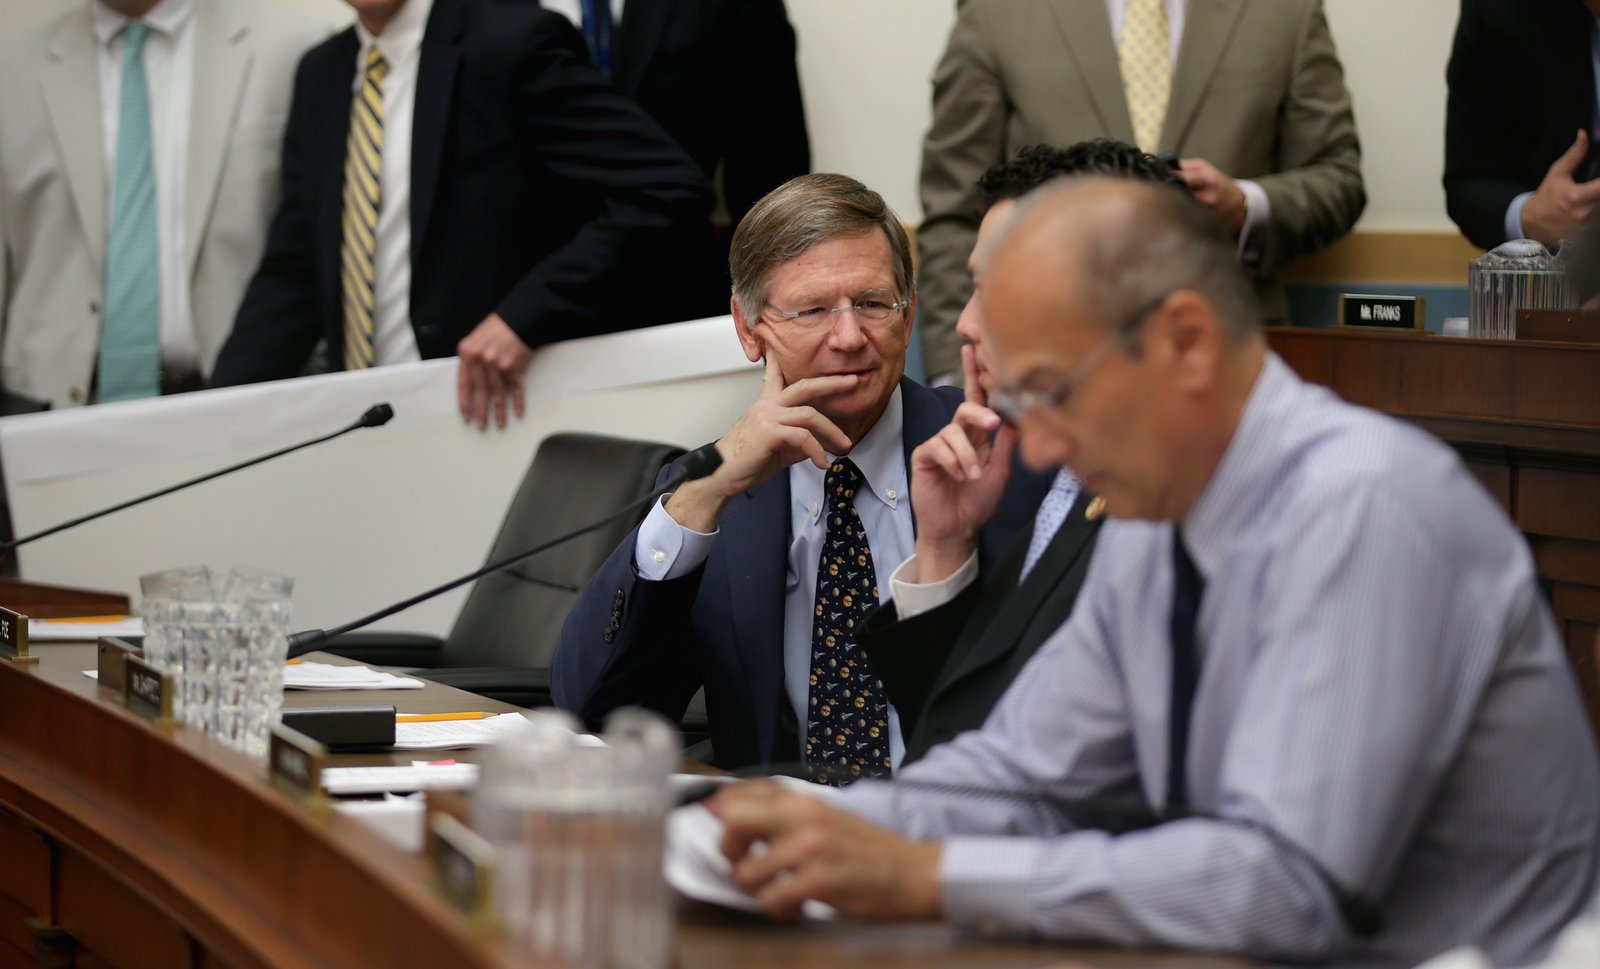 Rep. Lamar Smith (R-Tex.) is continuing his offensive against a NOAA study